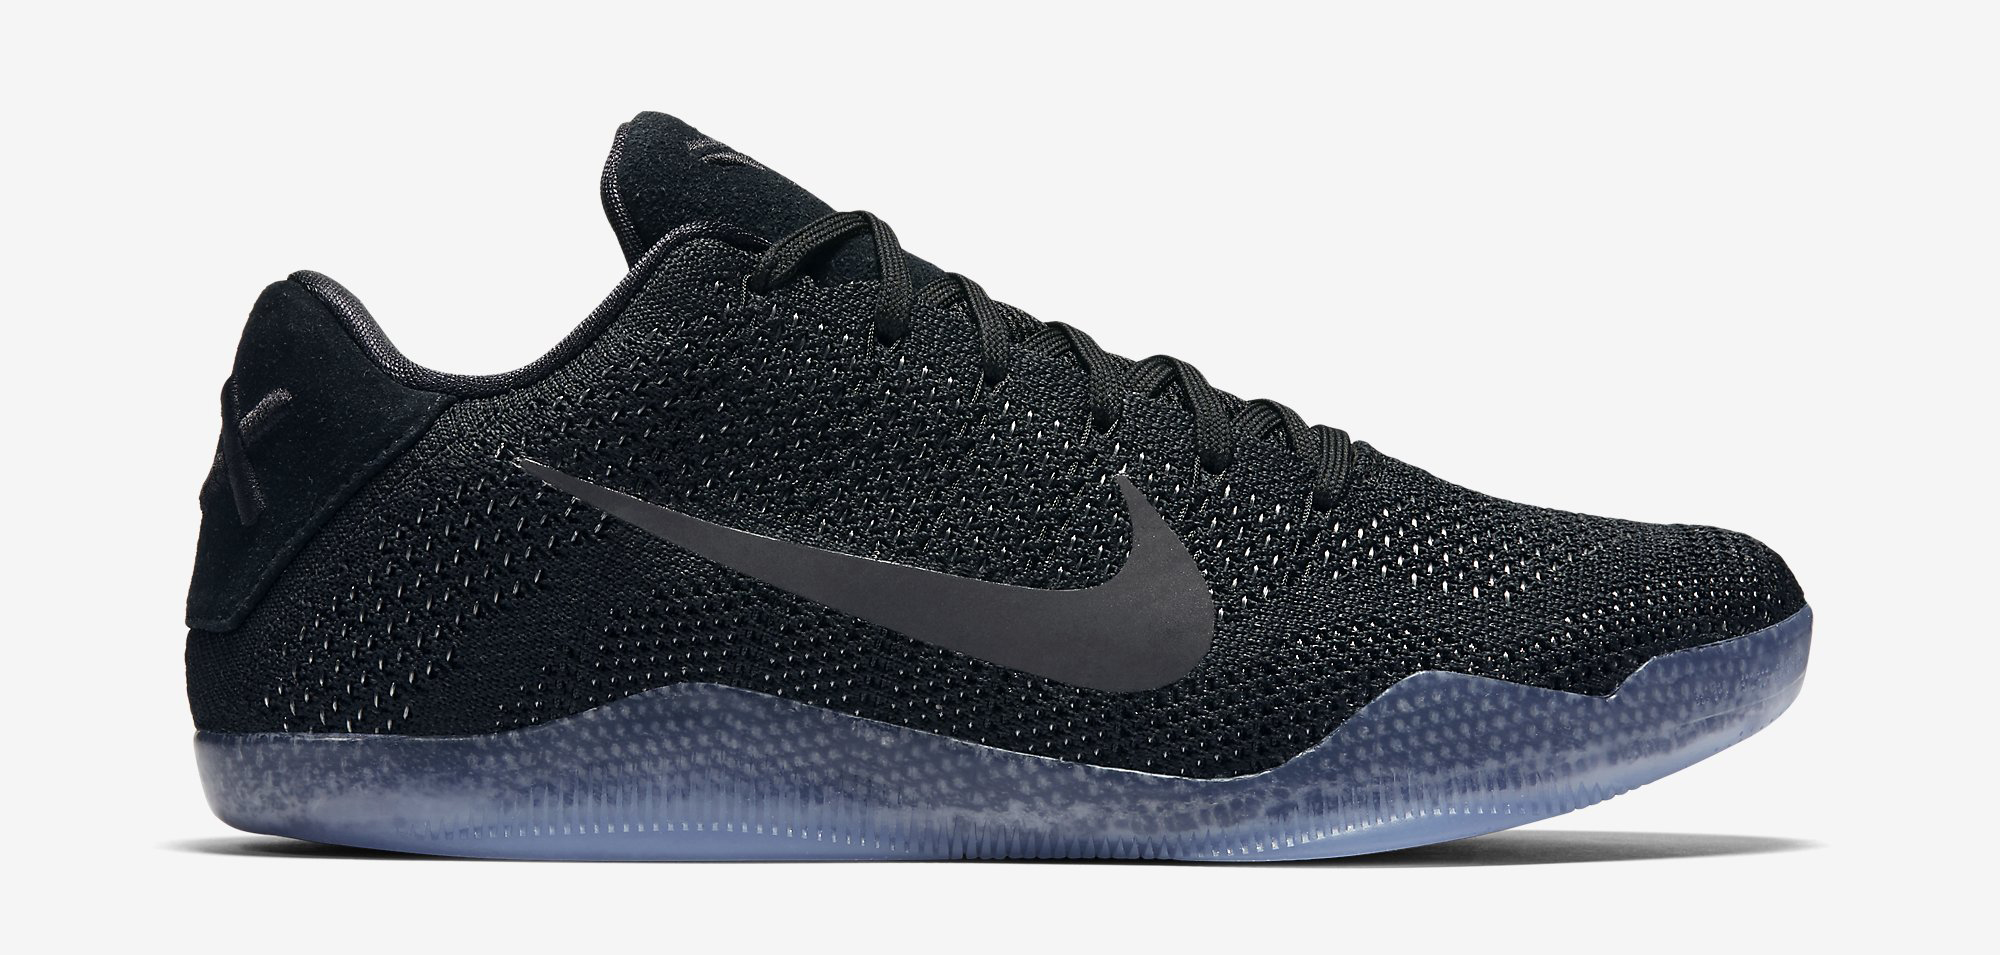 Nike Kobe 11 Black Space 822675-001 Profile